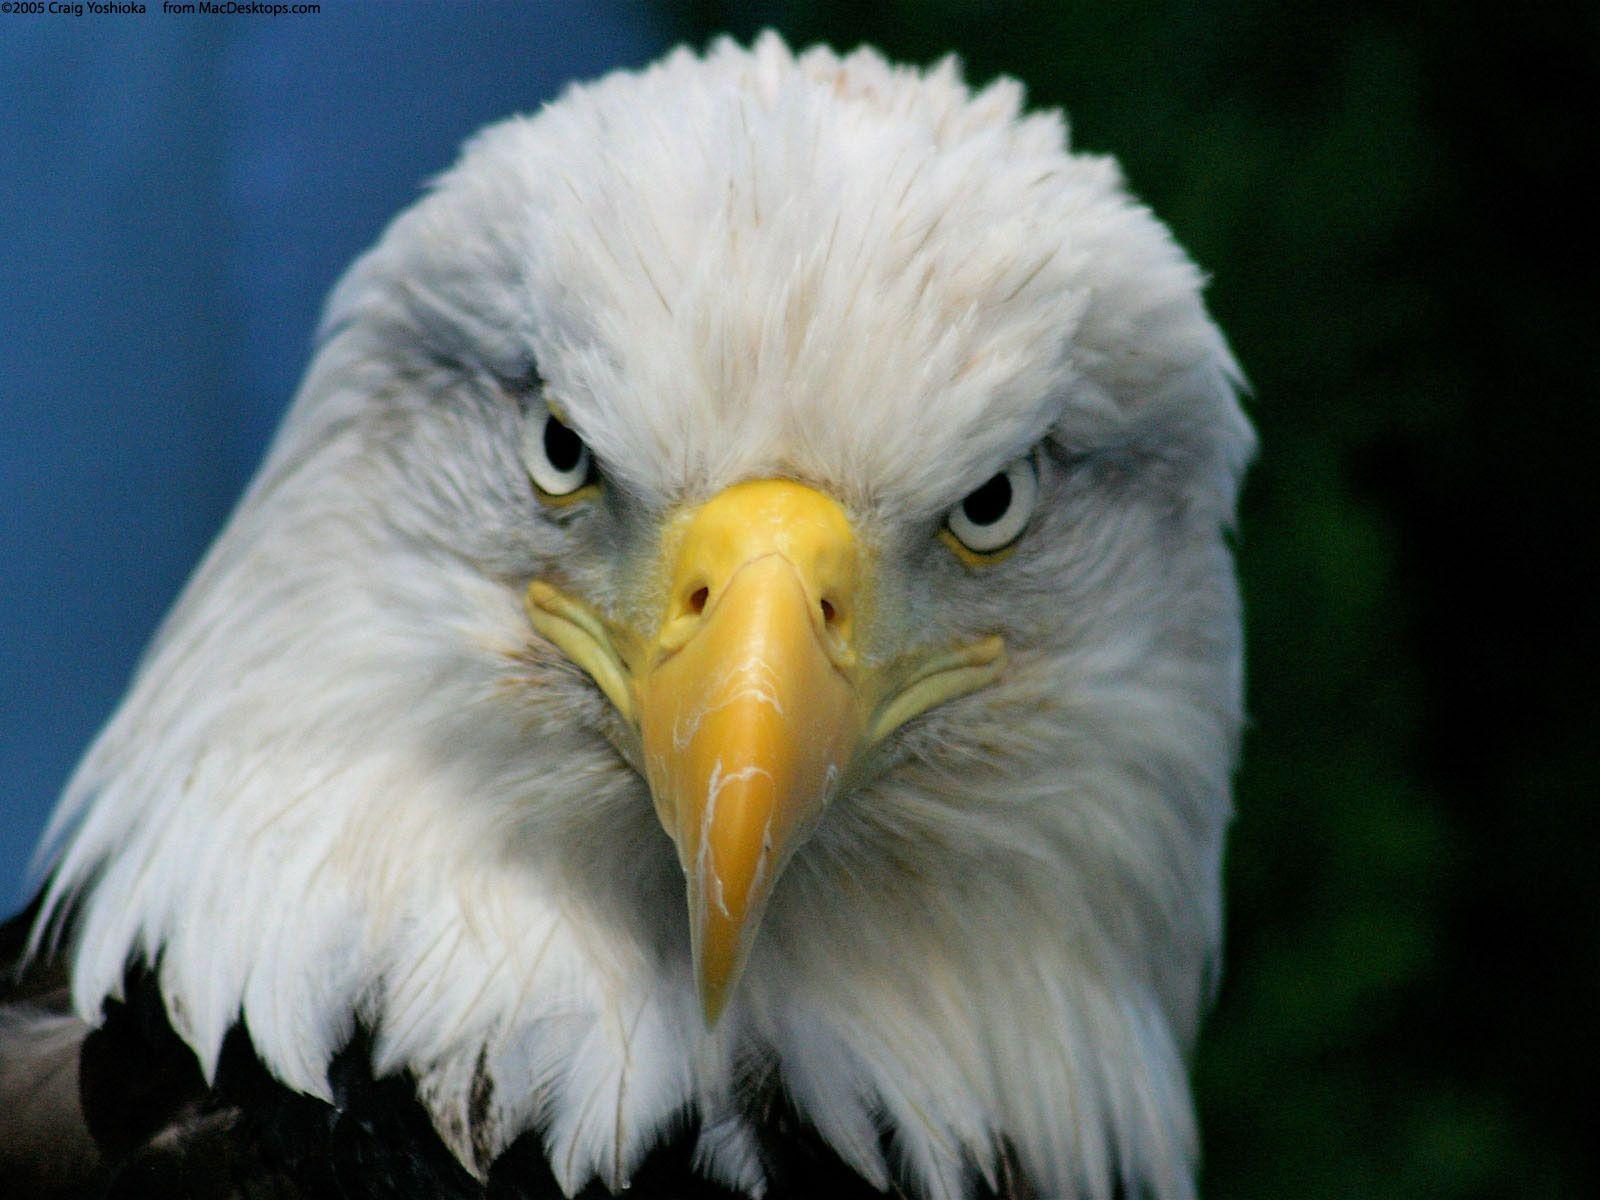 The Face Of Bald Eagle Wallpapers 2724 High Resolution